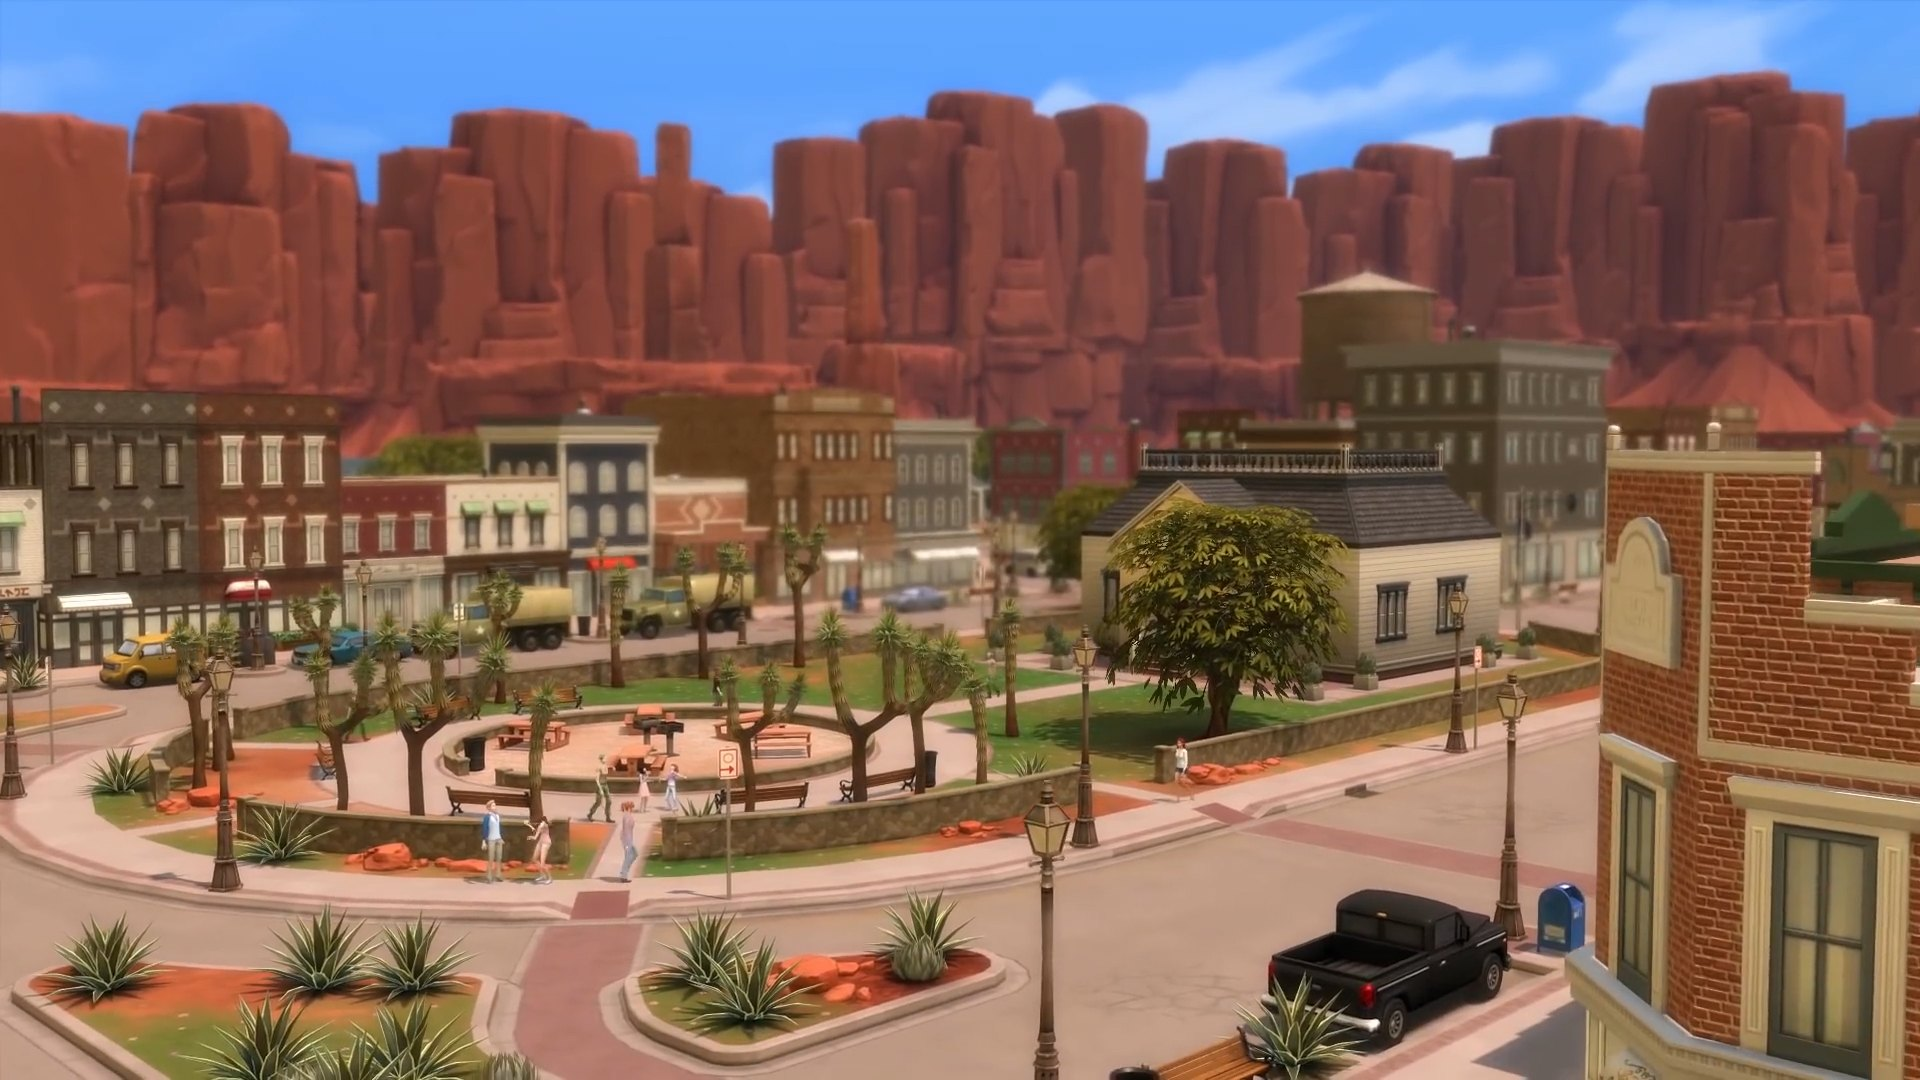 The Sims 4 Strangerville - The new town featured in the game pack.